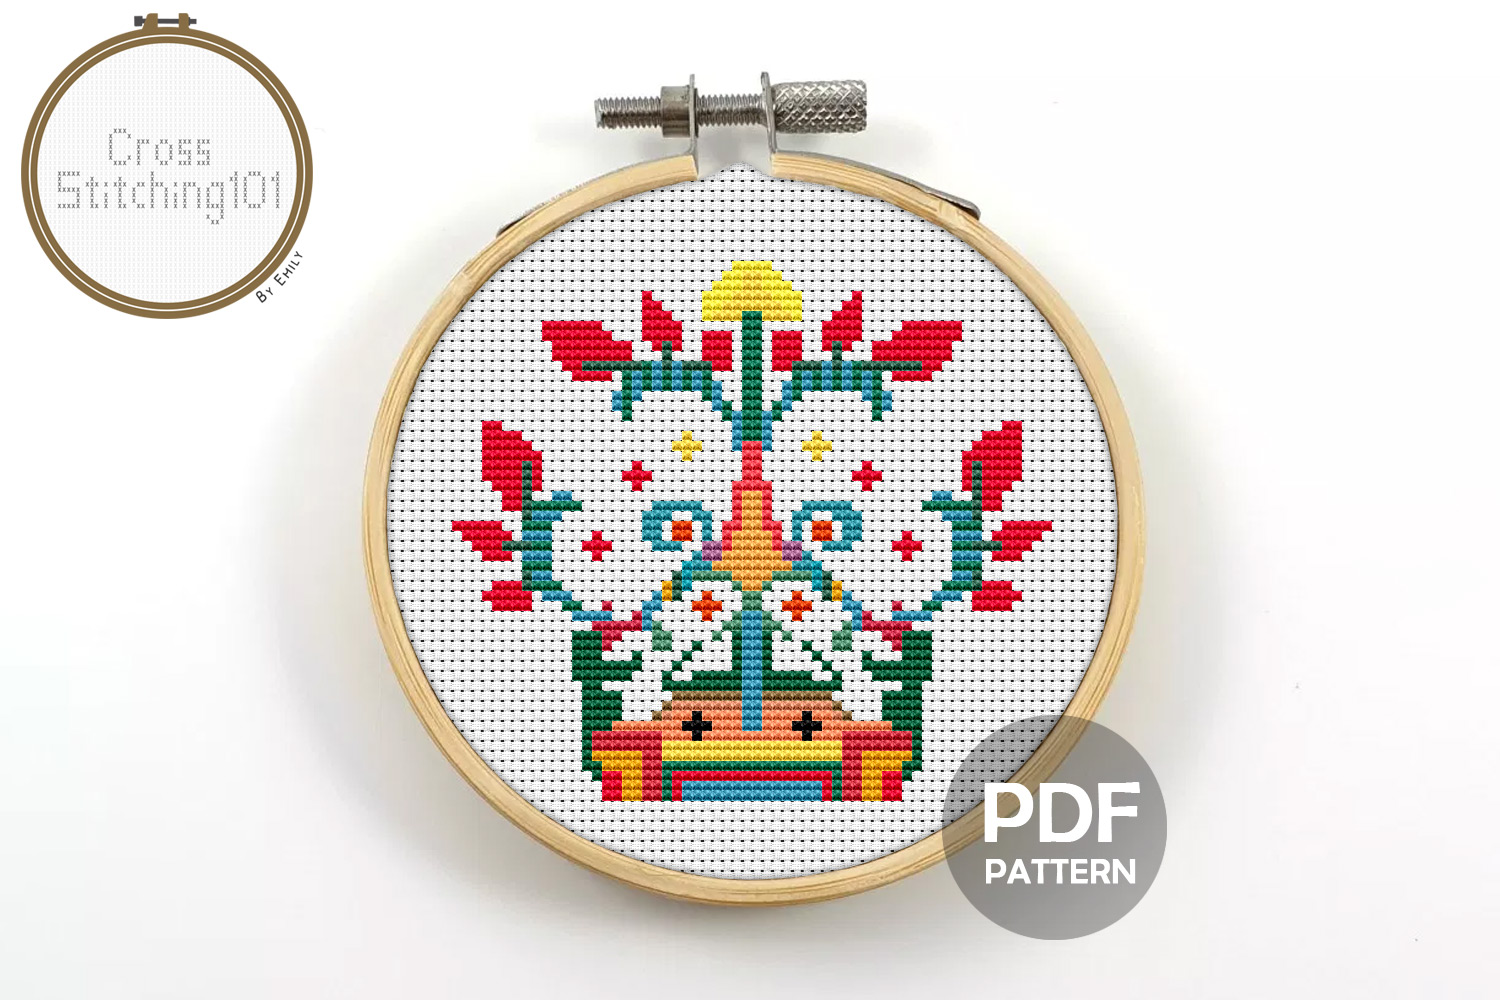 Floral Design Cross Stitch Pattern- Instant Download PDF example image 1